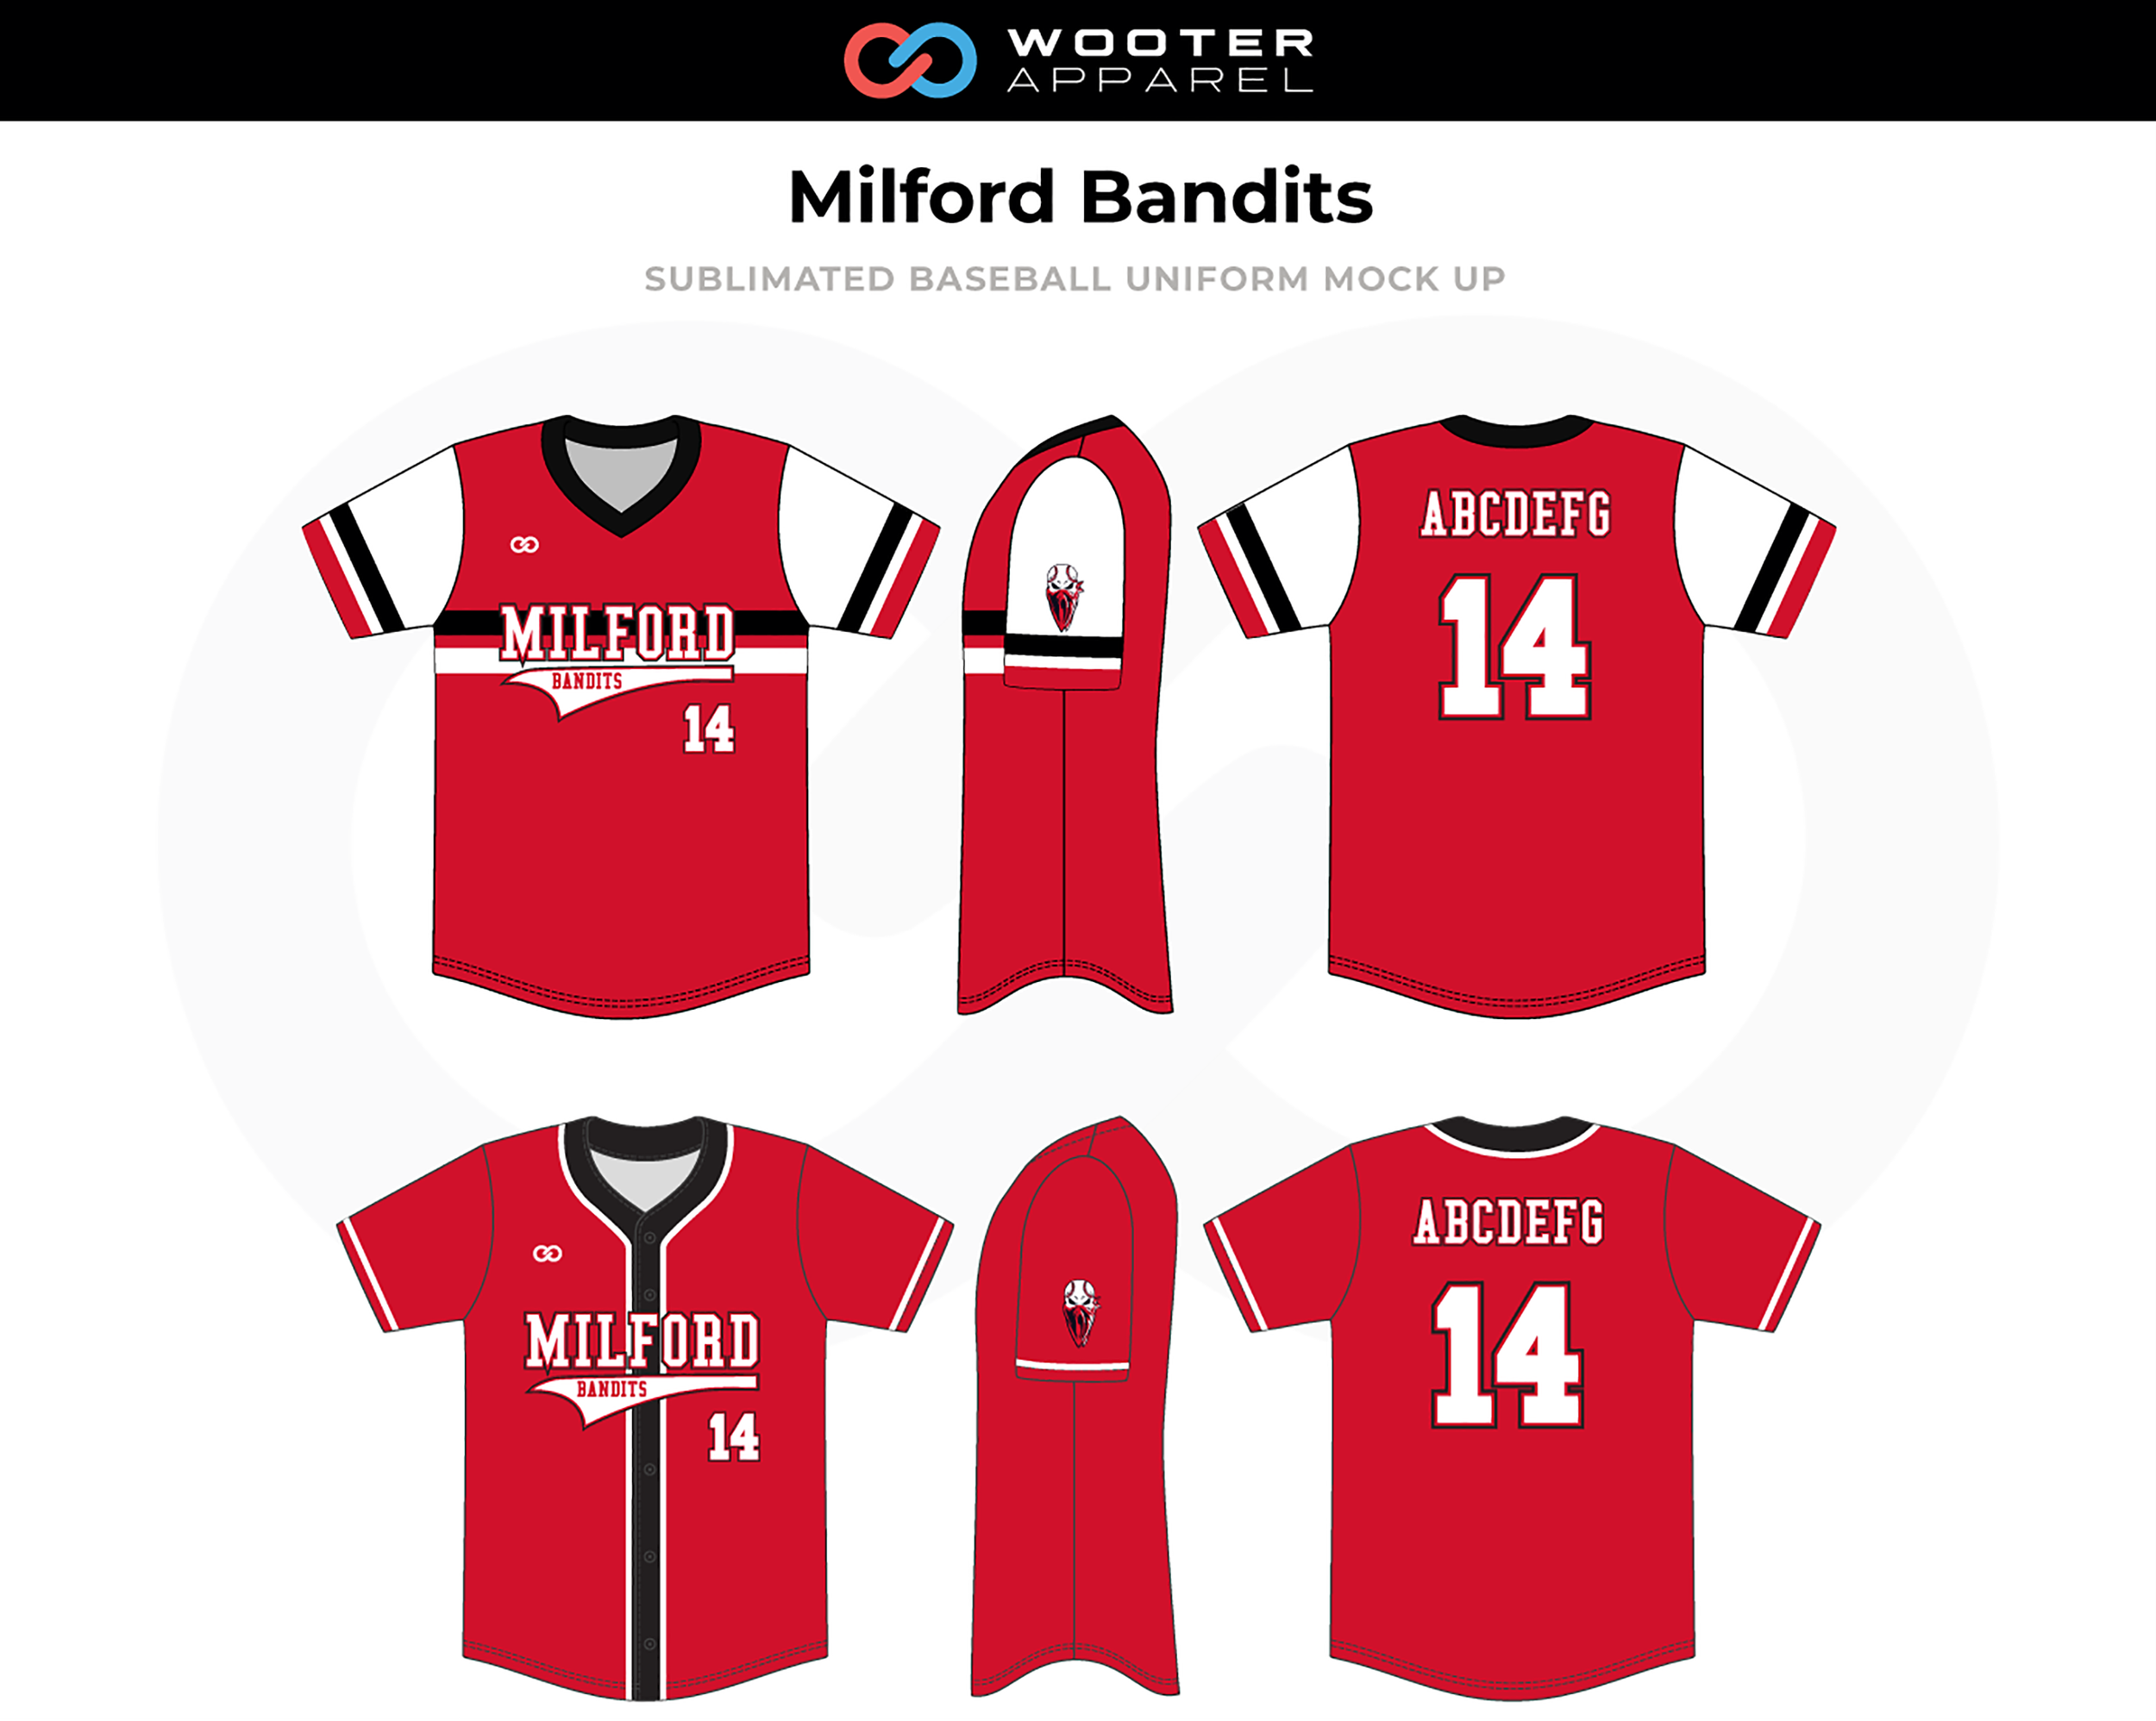 Milford-Bandits-Sublimated-Baseball-Uniforms-2.png